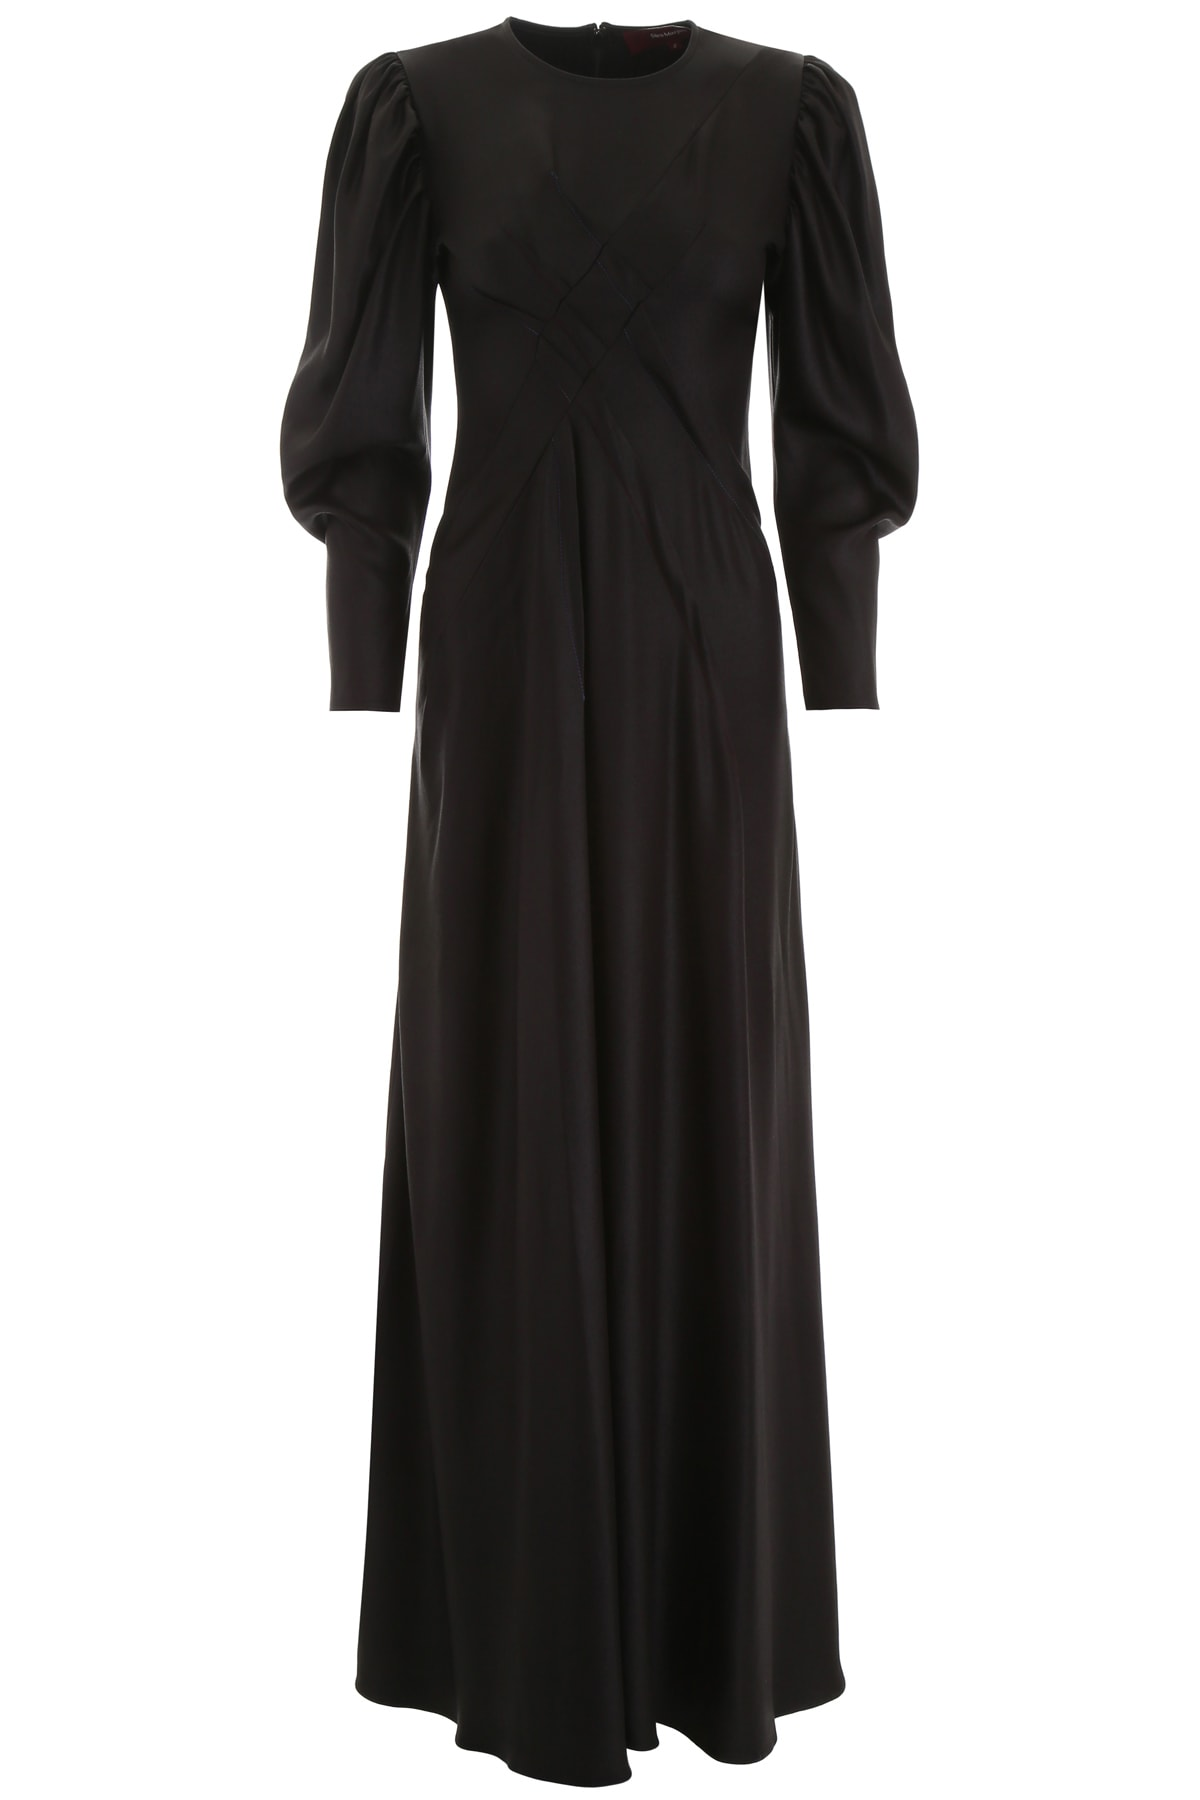 Sies Marjan Virginia Dress